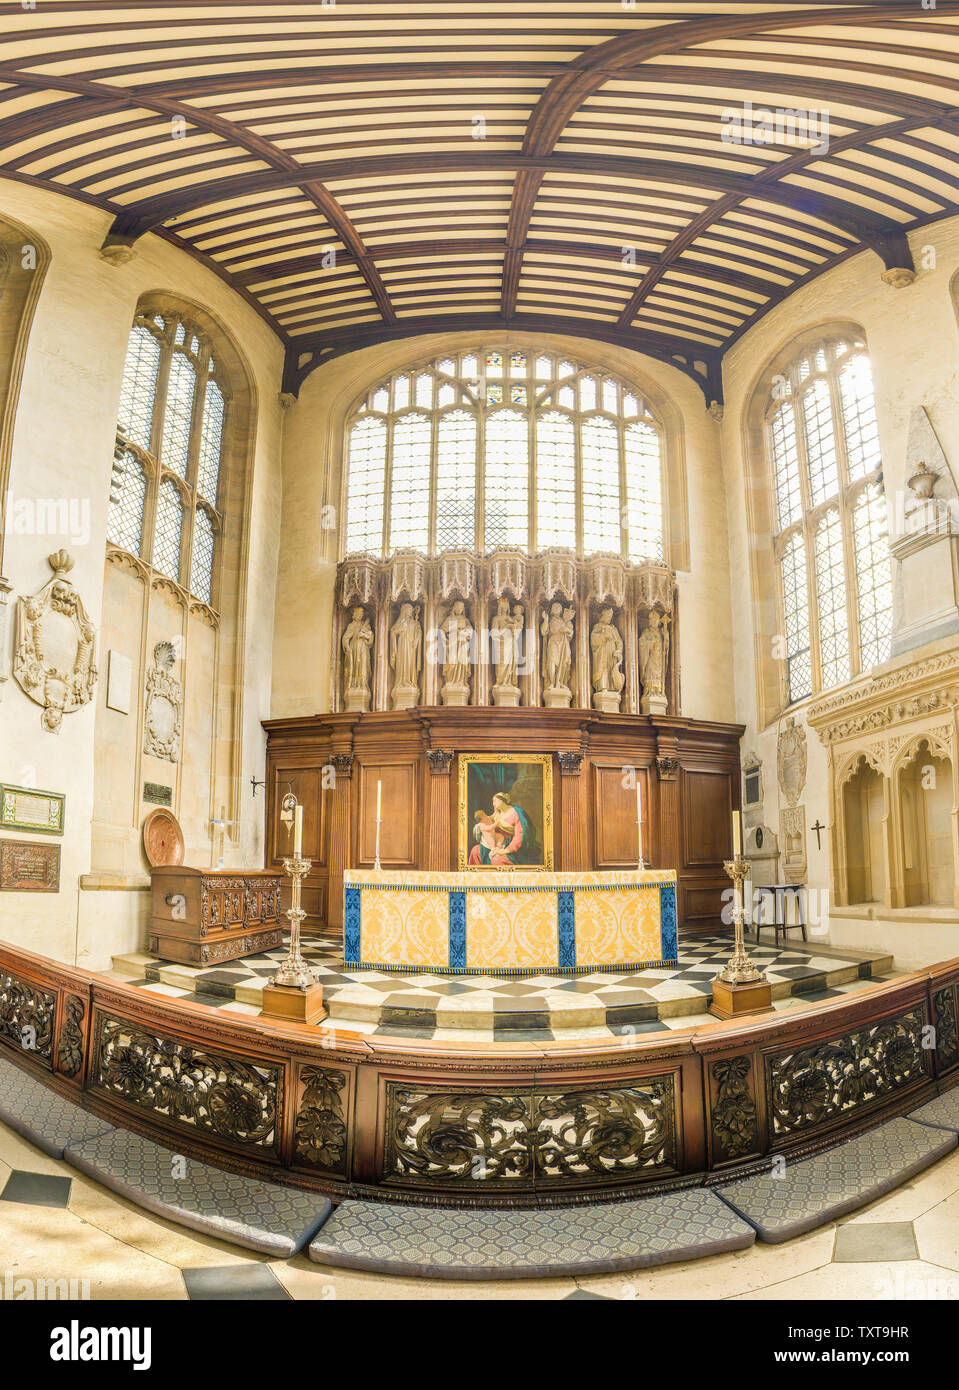 Main altar and chancel interior of St Mary the Virgin church, Oxford university, England. - Stock Image